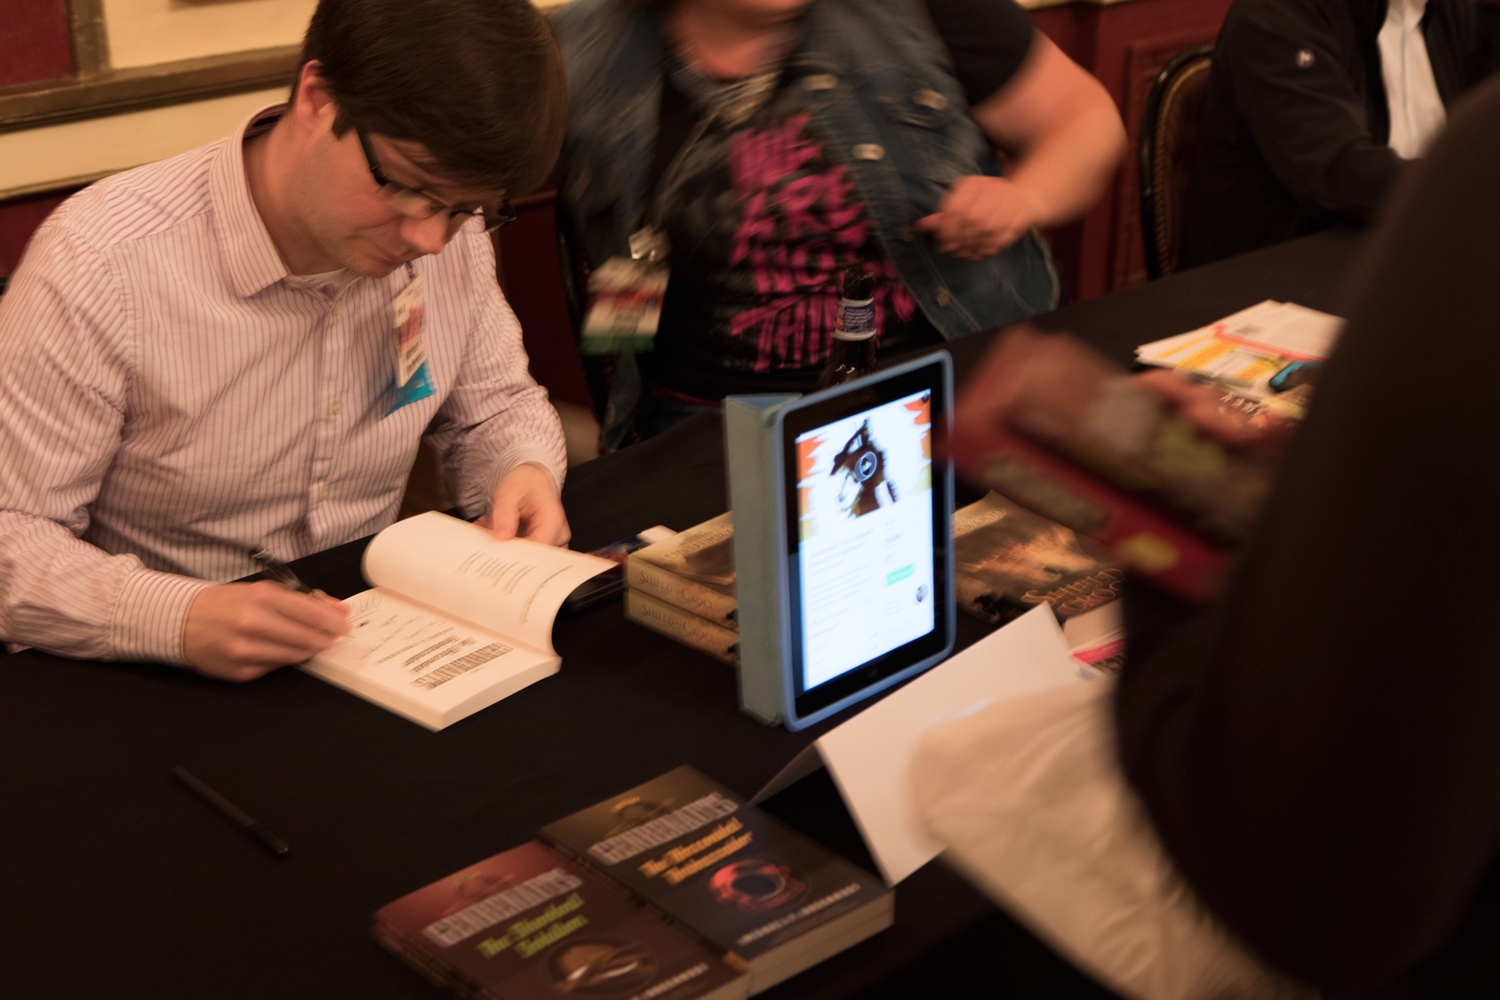 Walking the walk: At the author signing Mike attracted attention to his table using an ipad displaying his active kickstarter.